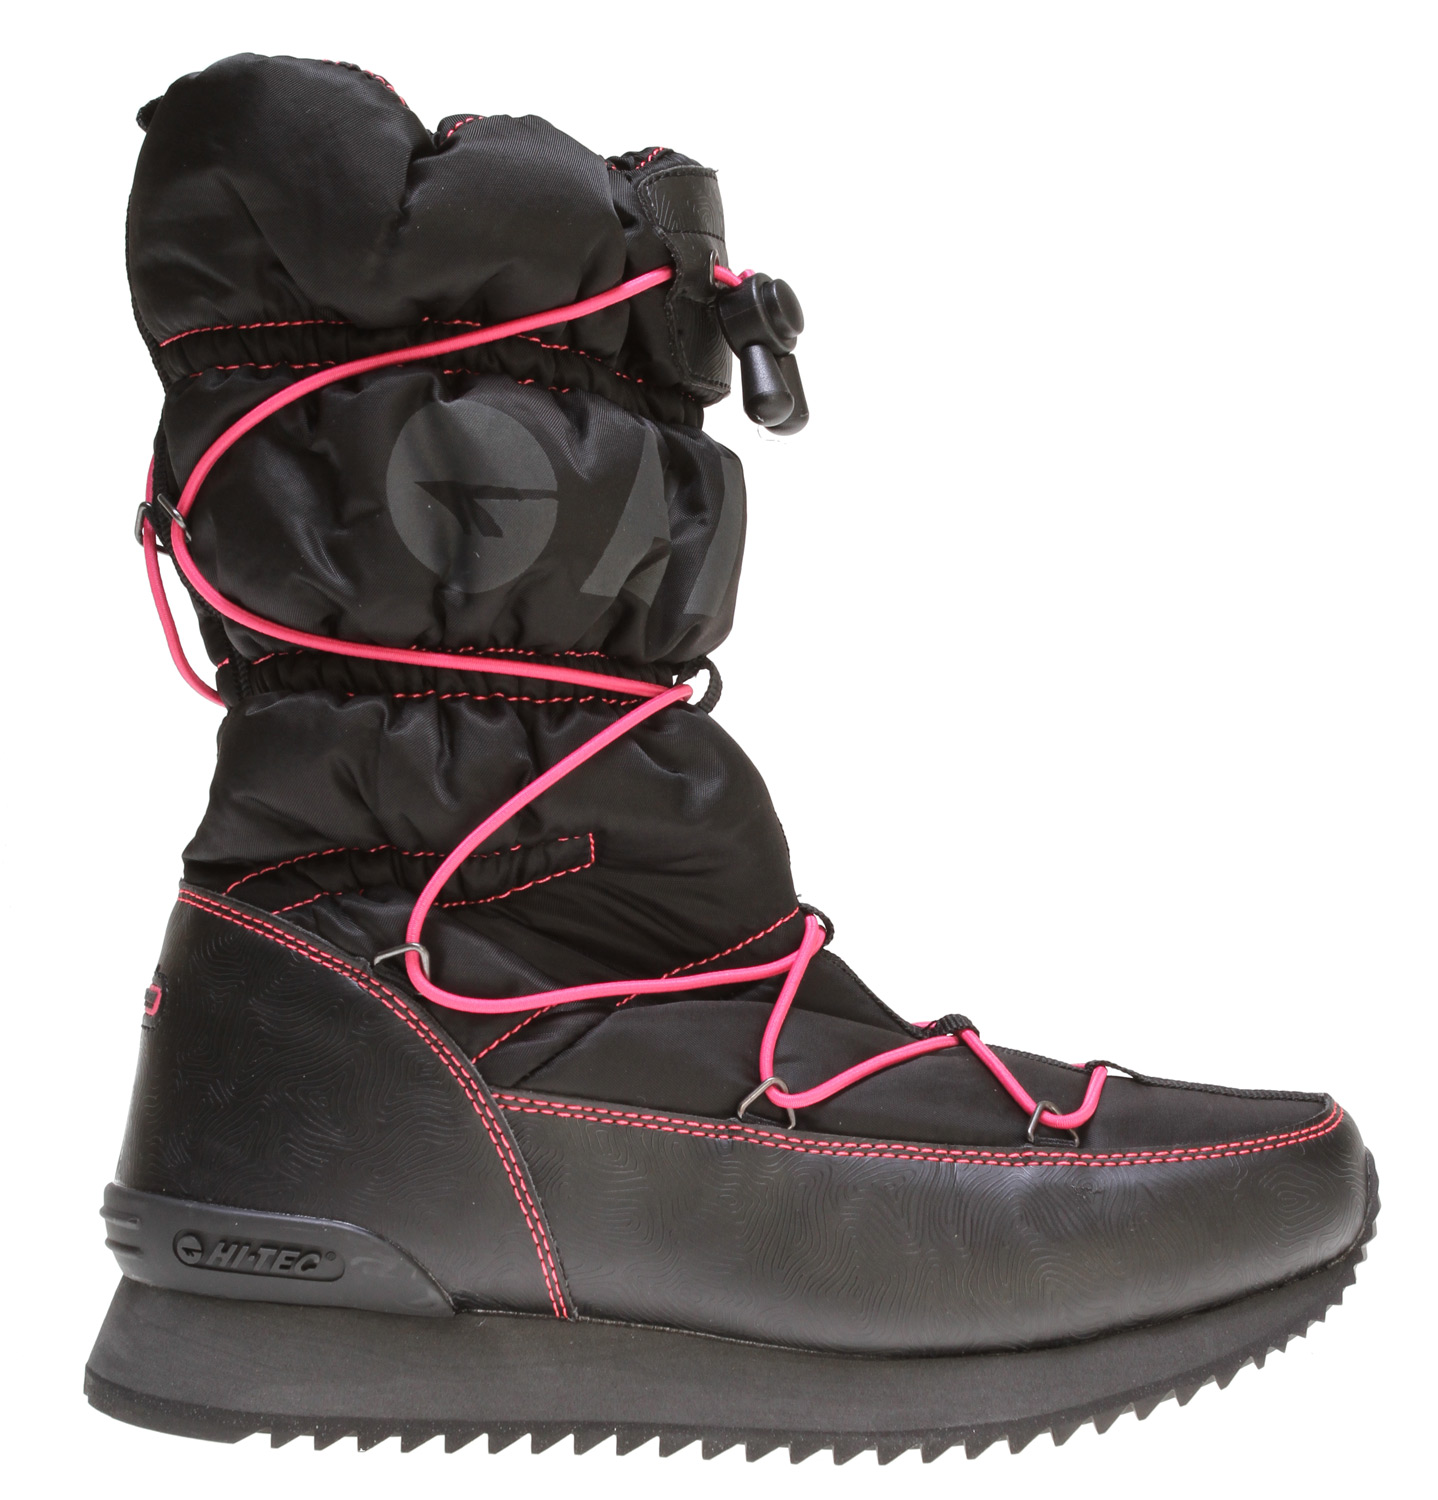 Key Features of the Hitec New Moon 200 Shoes Black/Melon: DWR treated synthetic upper 200g Thinsulate insulated construction Die-cut EVA midsole Carbon rubber outsole - $68.95